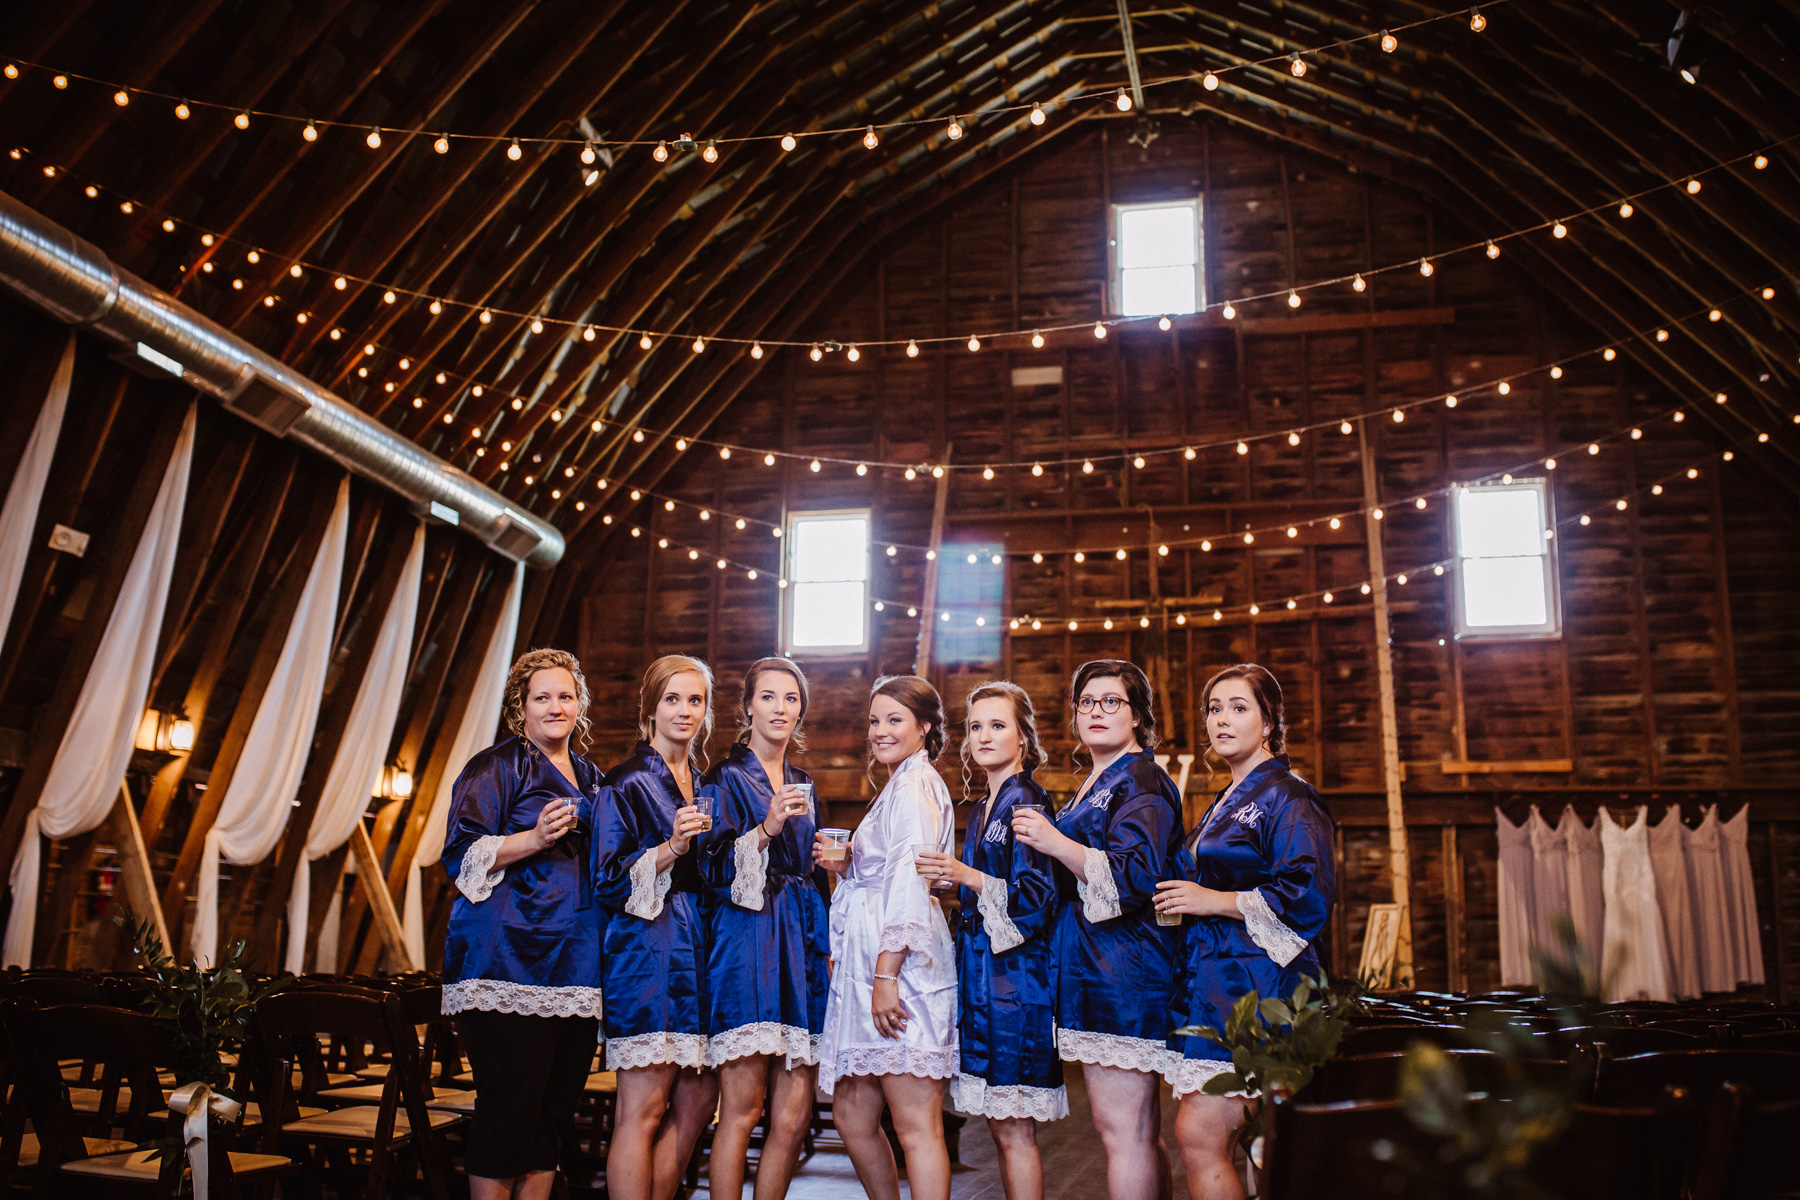 Bridal Party getting ready robes and portraits | Kayli LaFon Photography